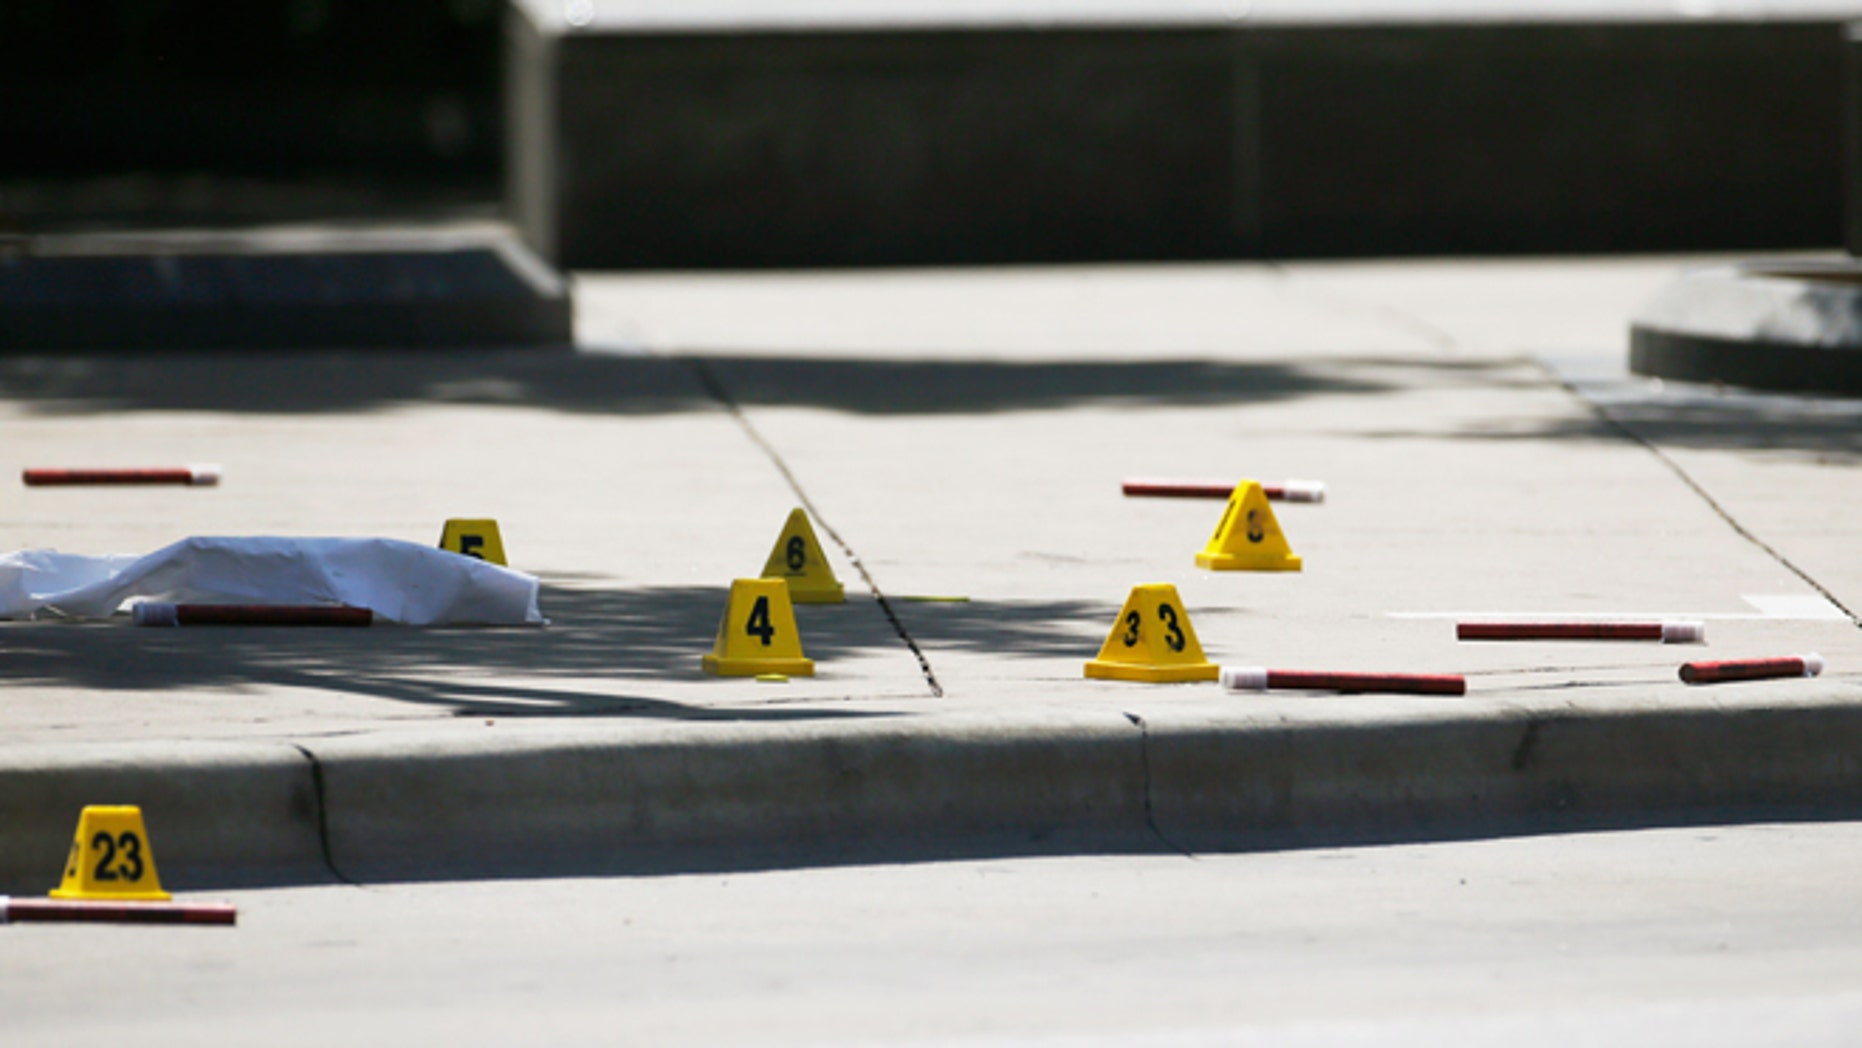 Markers litter the sidewalk as FBI investigators look over the crime scene in Dallas, Texas, U.S. July 8, 2016 following a Thursday night shooting incident that killed five police officers.  REUTERS/Carlo Allegri - RTX2KE0D